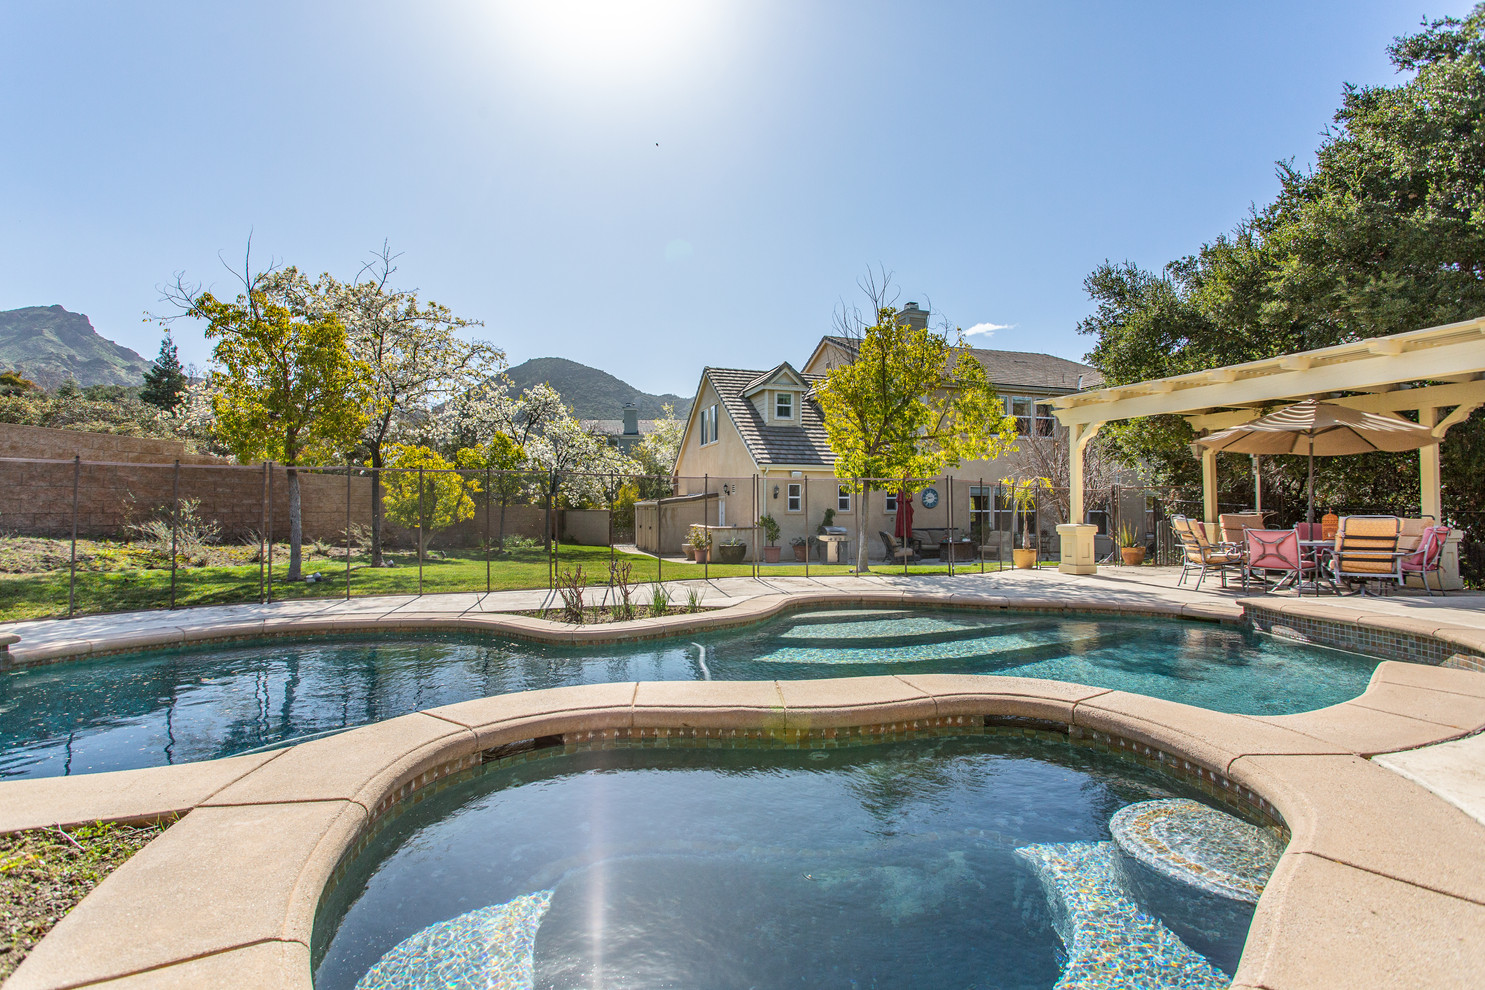 1543 Sycamore Canyon Dr - HsH Prod.-56.j